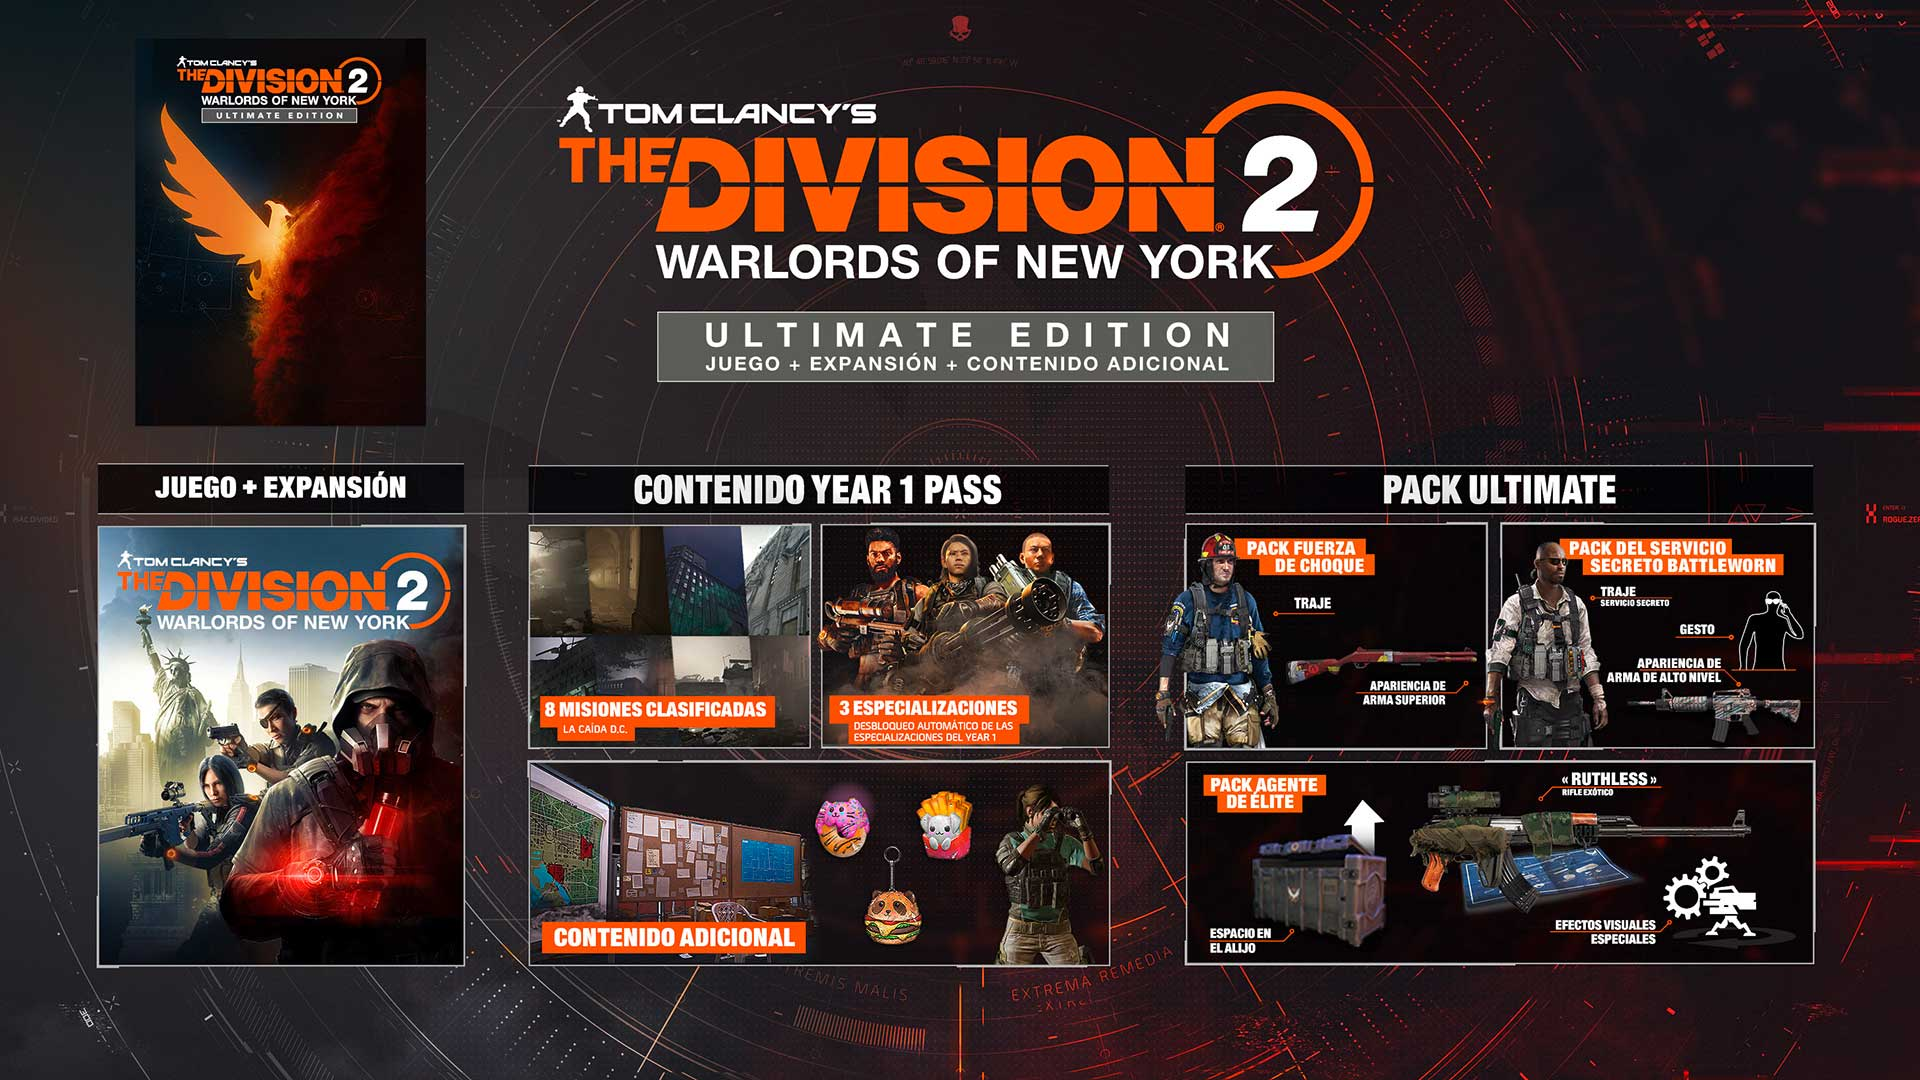 The Division 2 Warlords of New York Ultimate